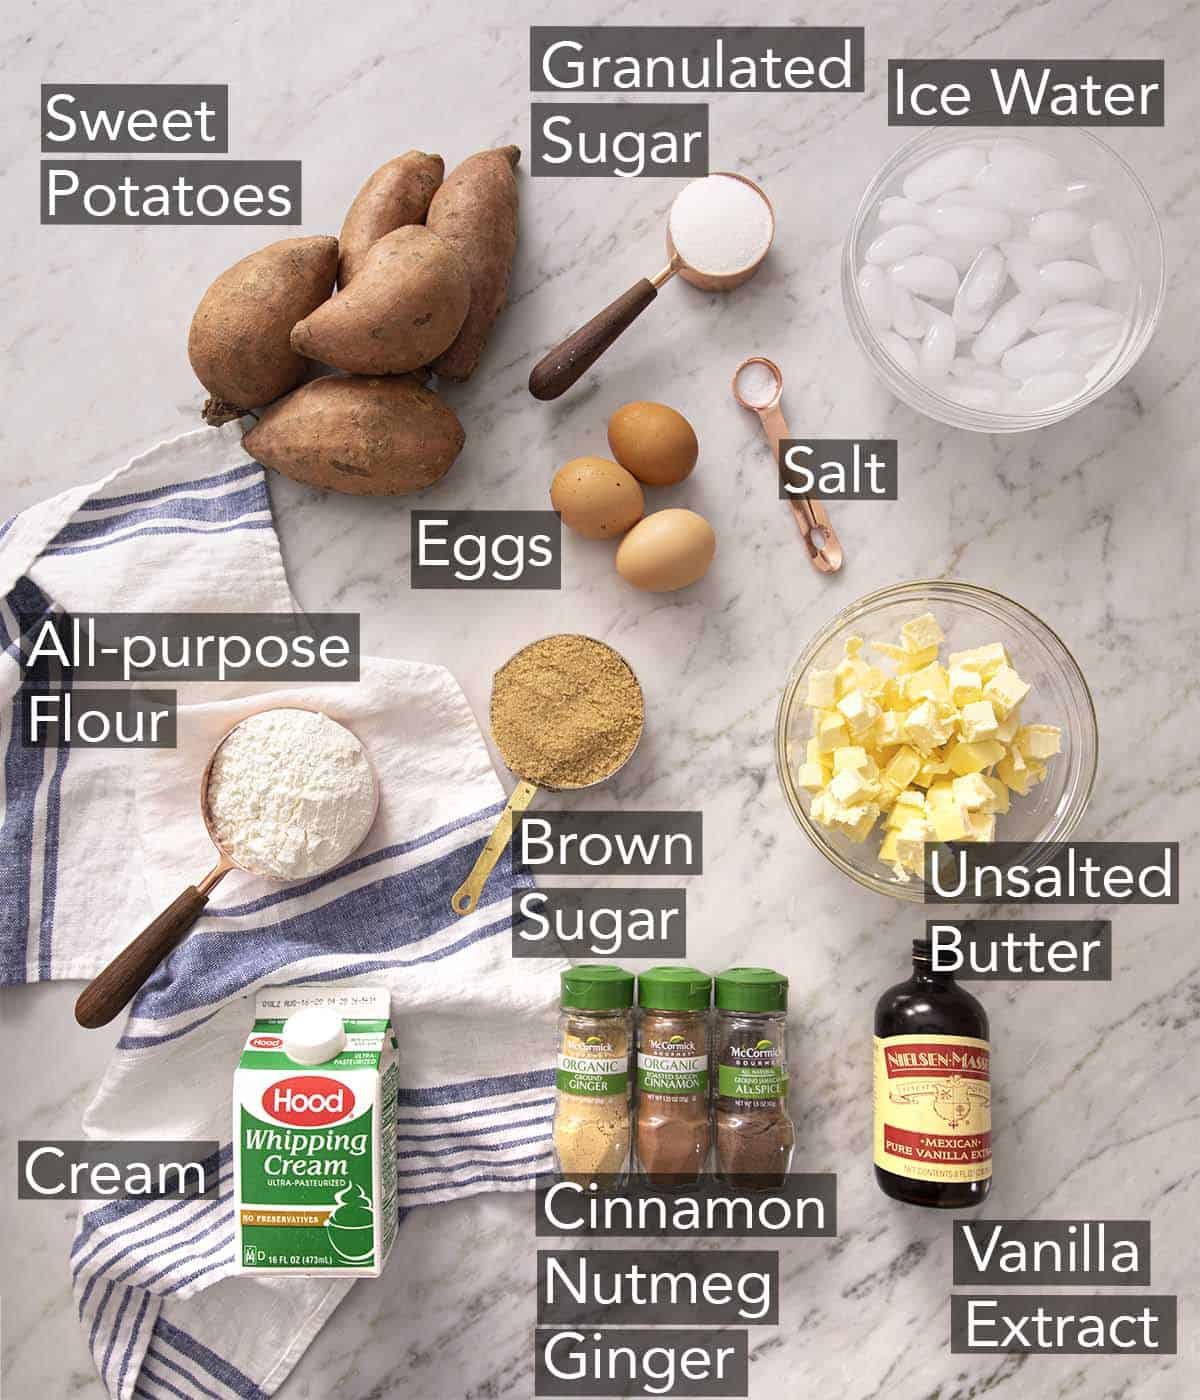 Ingredients for making sweet potato pie on a marble counter.